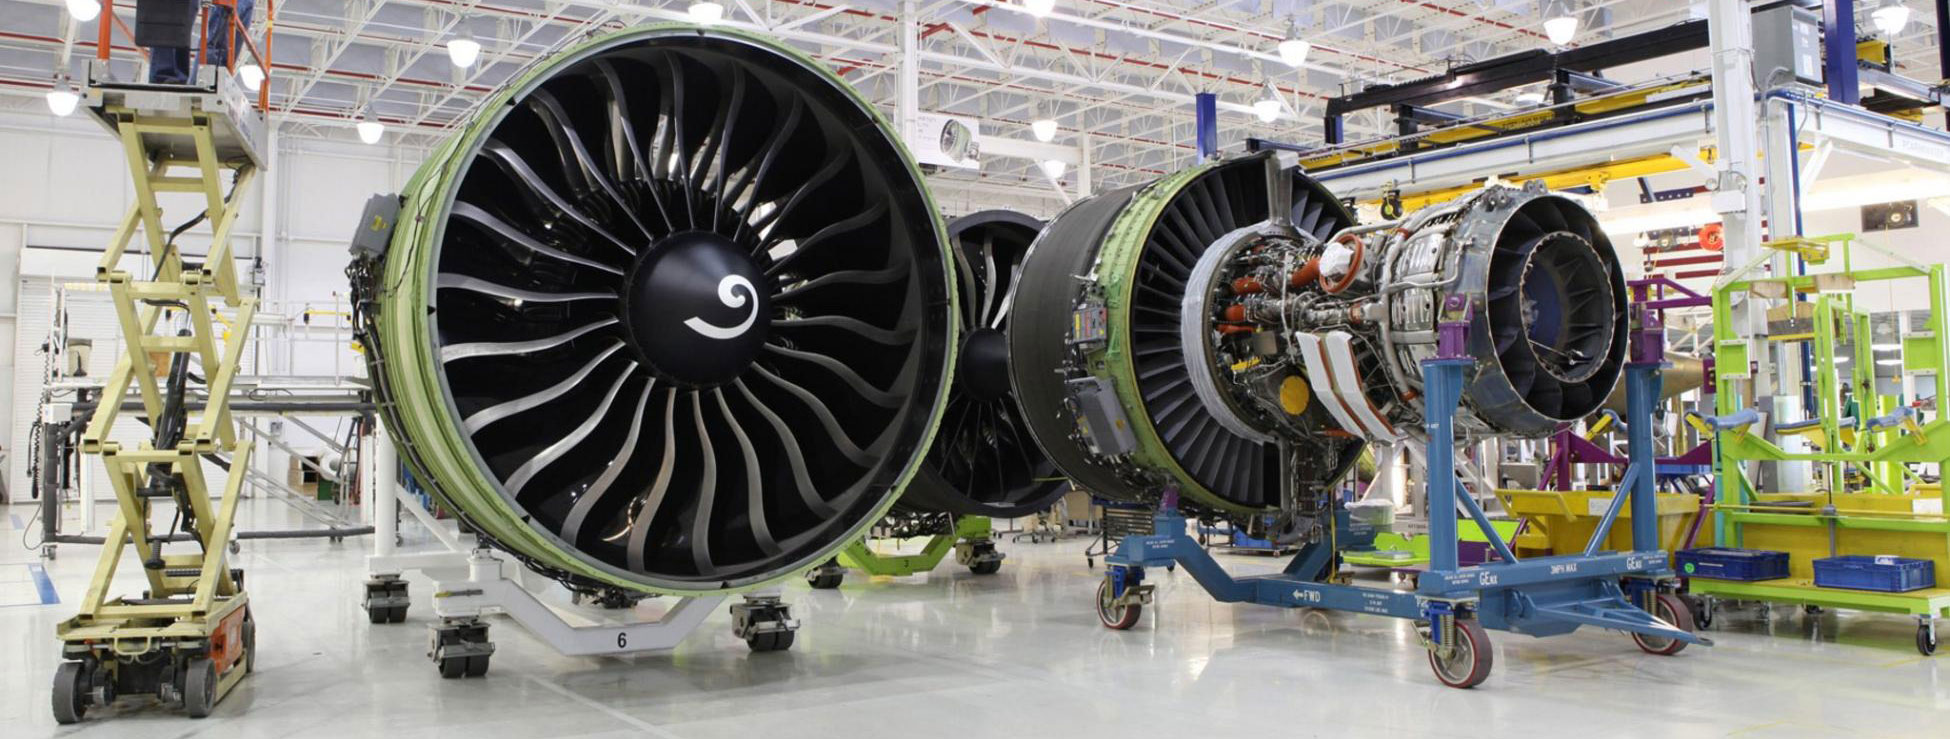 Aircraft Maintenance a Breeze with AR Technology